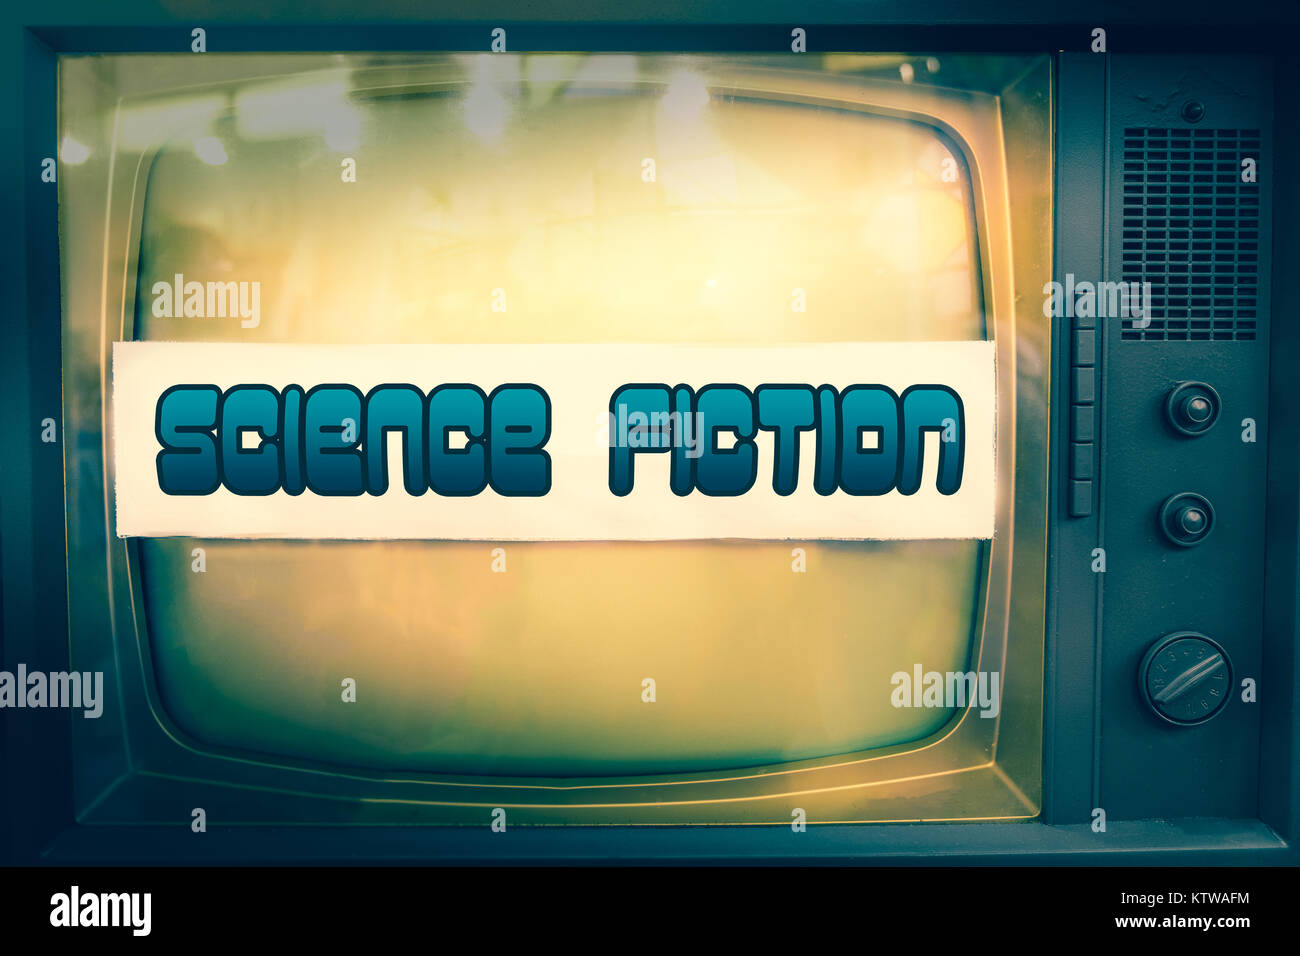 science fiction movie genre sci-fi television label old tv text  - Stock Image